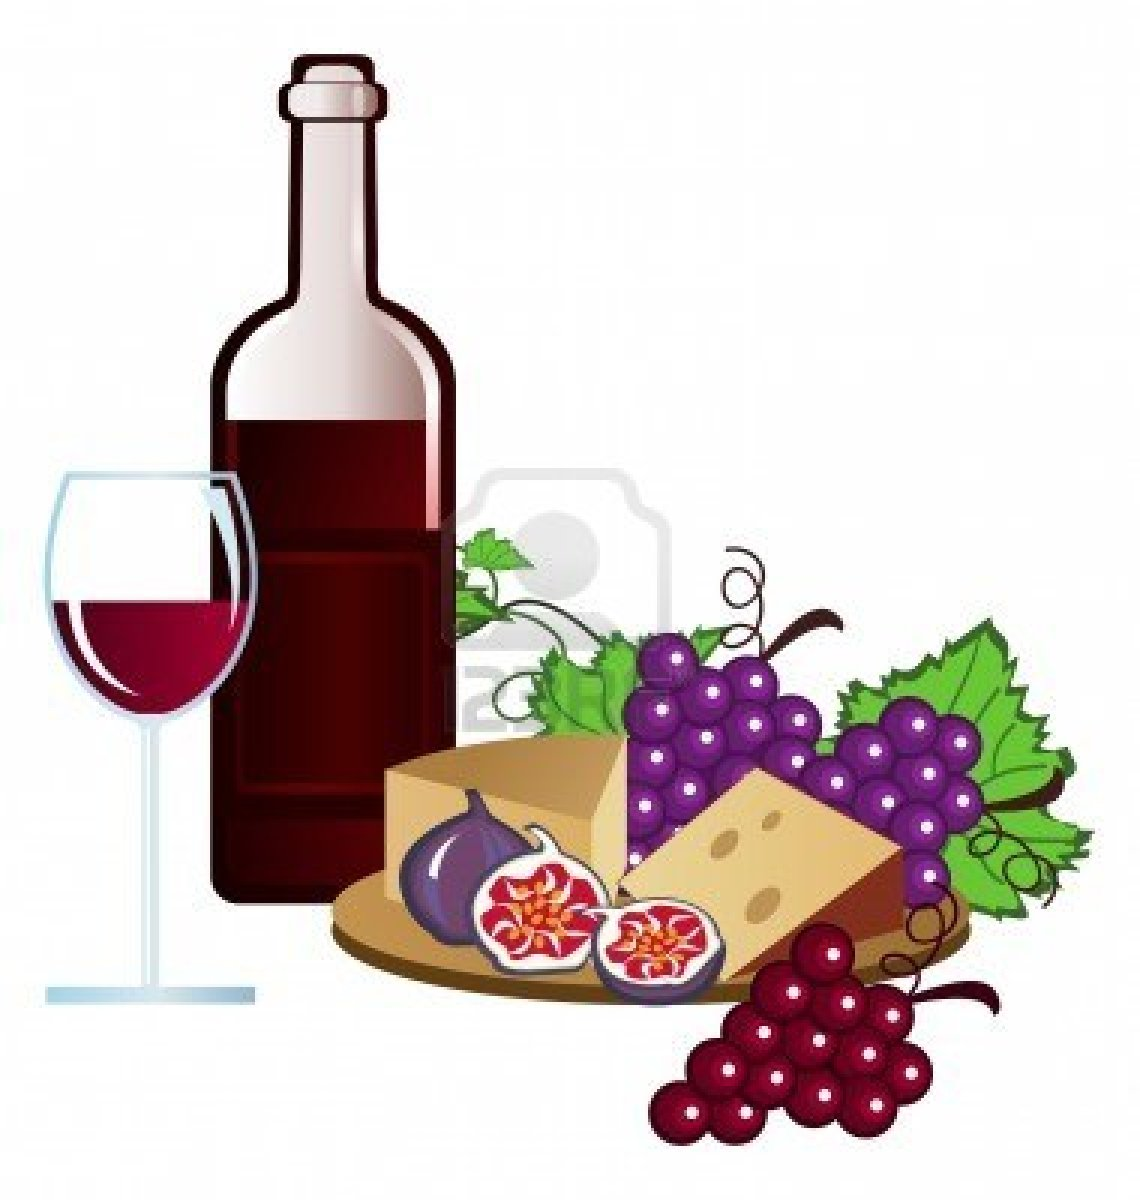 Wine and grapes clipart free stock Free Grape Clipart box, Download Free Clip Art on Owips.com free stock